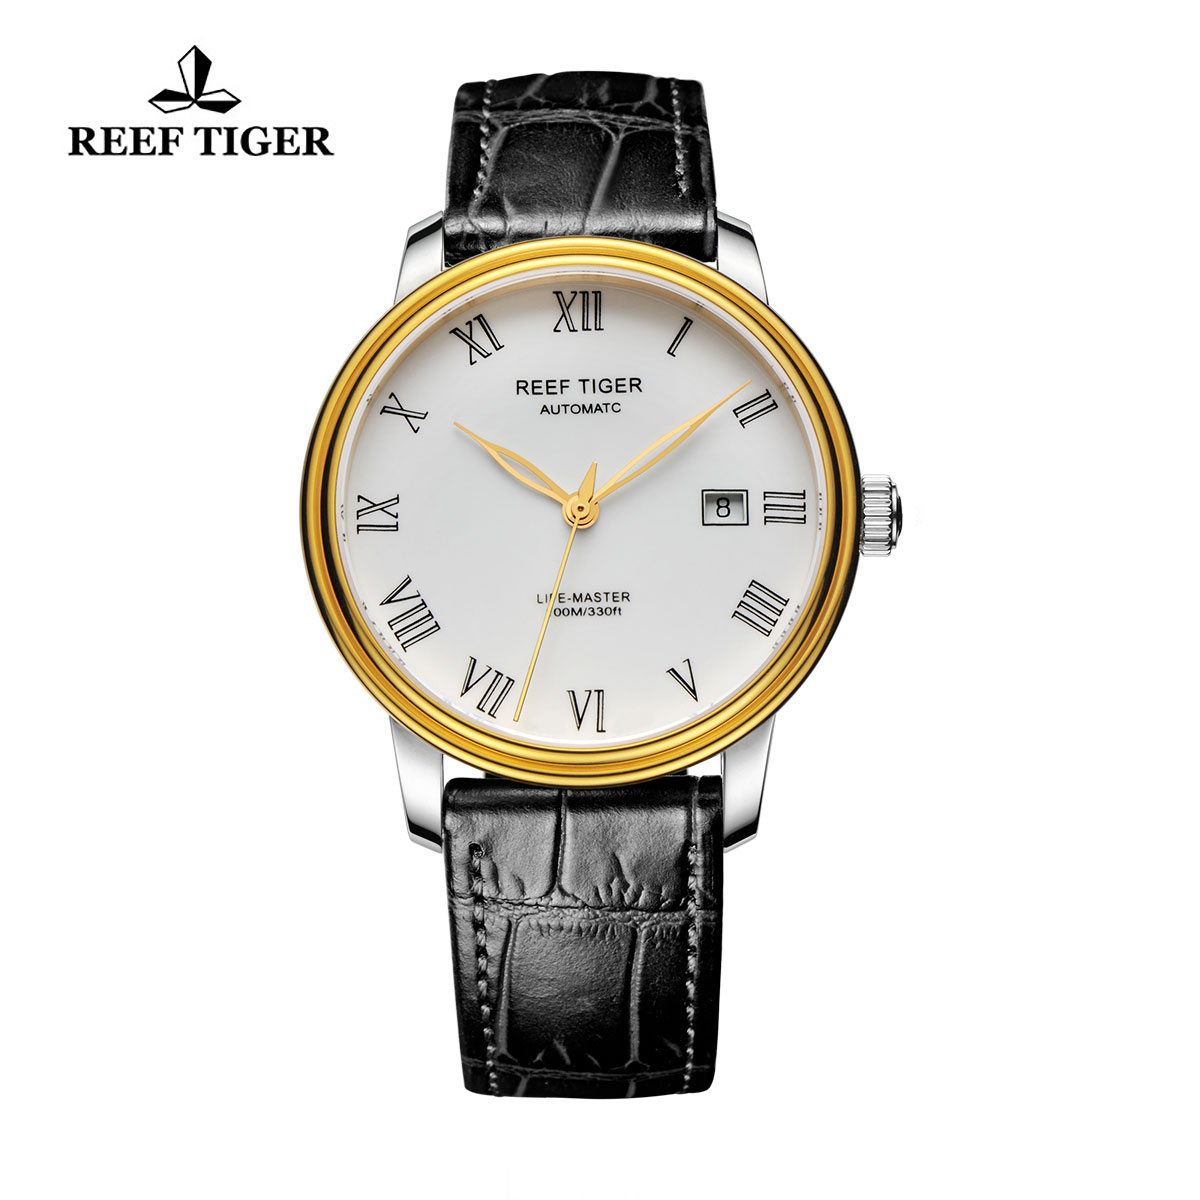 Reef Tiger Life-Master Business Watch Automatic Yellow Gold/Steel White Dial RGA812-GWB